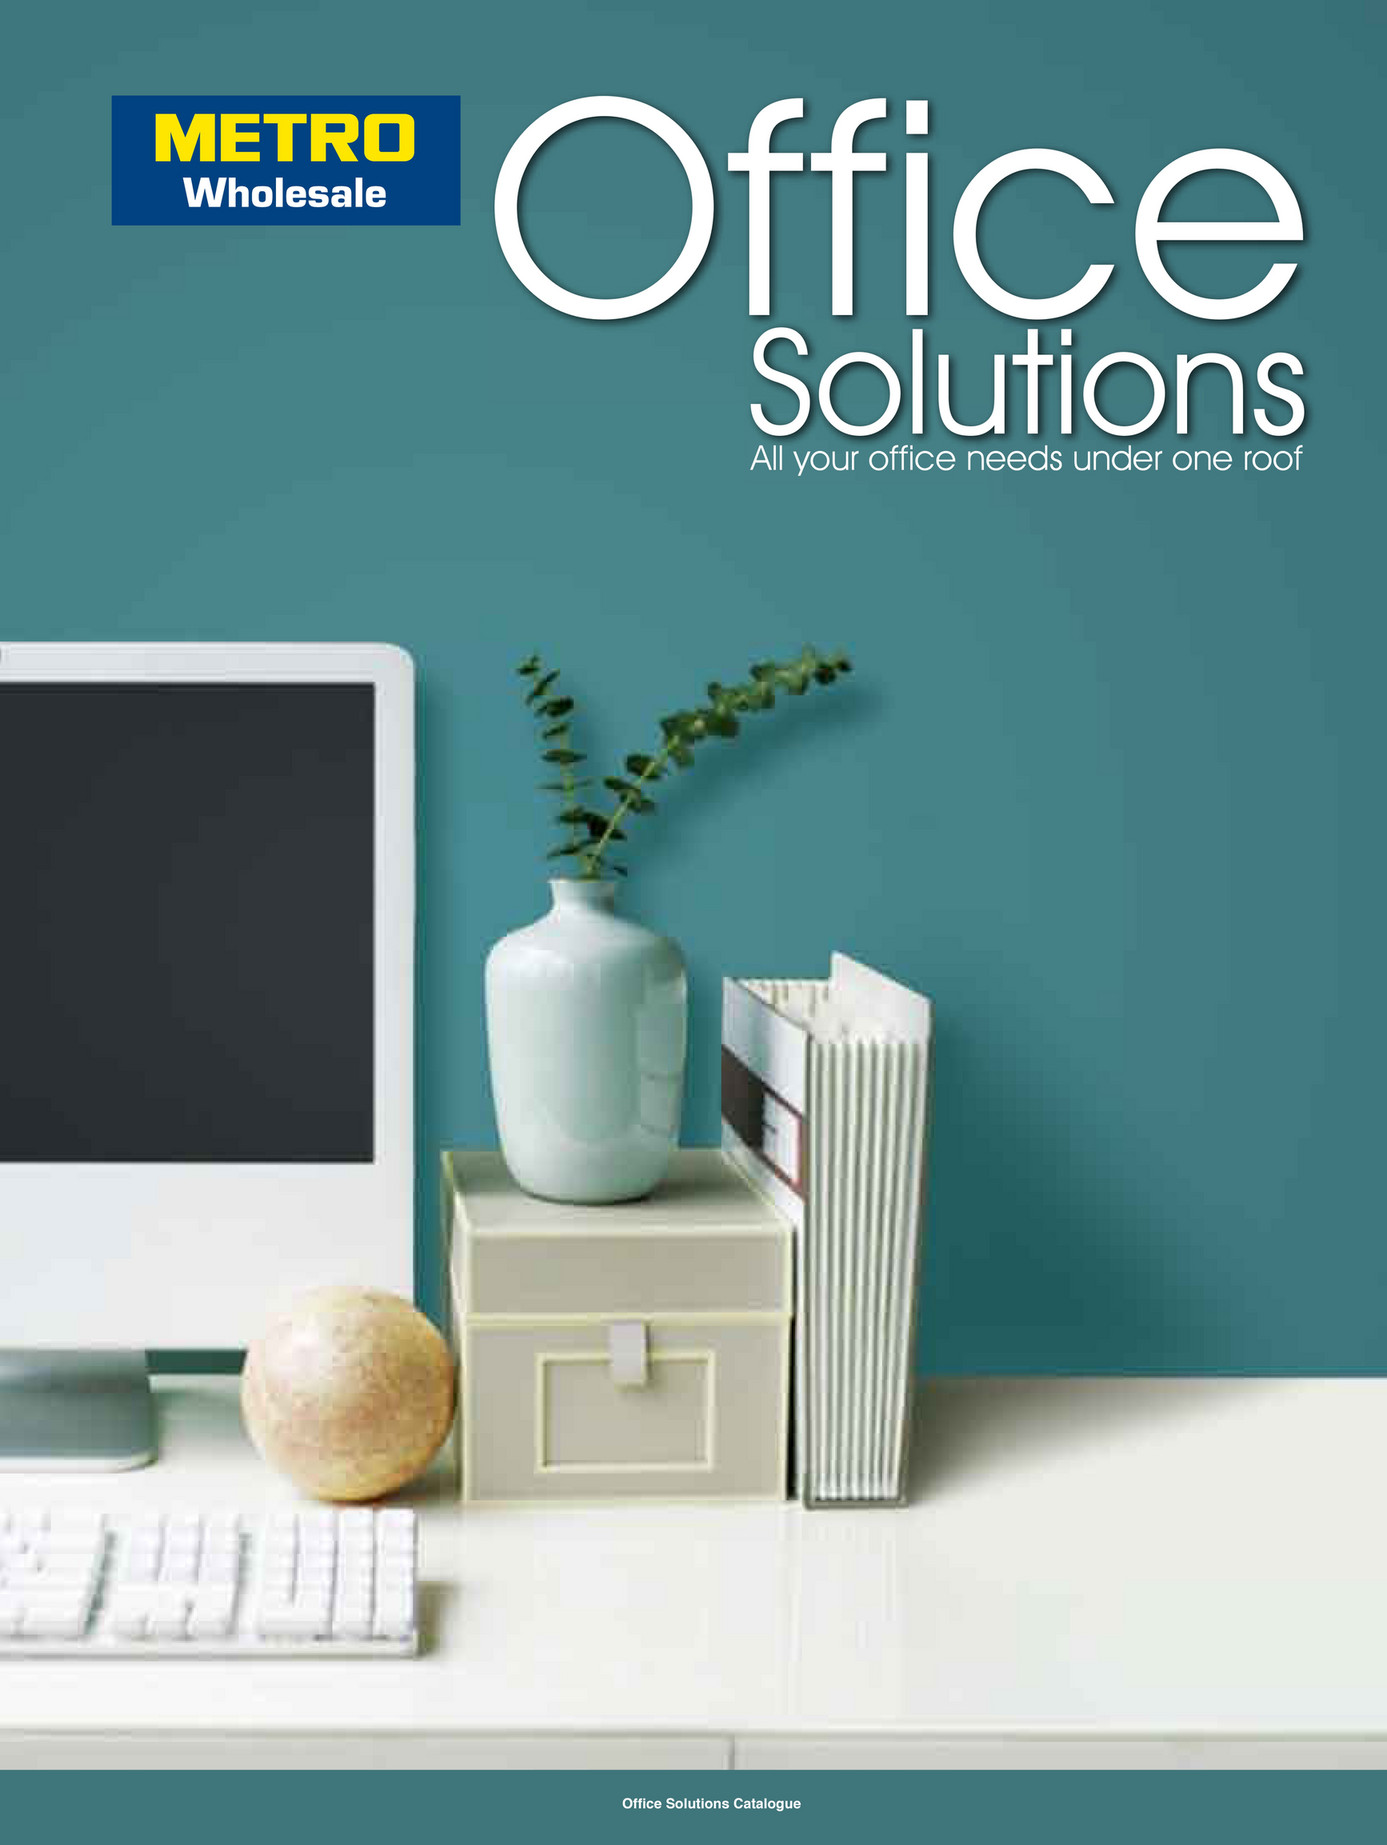 METRO Cash & Carry India - Office Solutions Catalog 2016 - Page 30-31